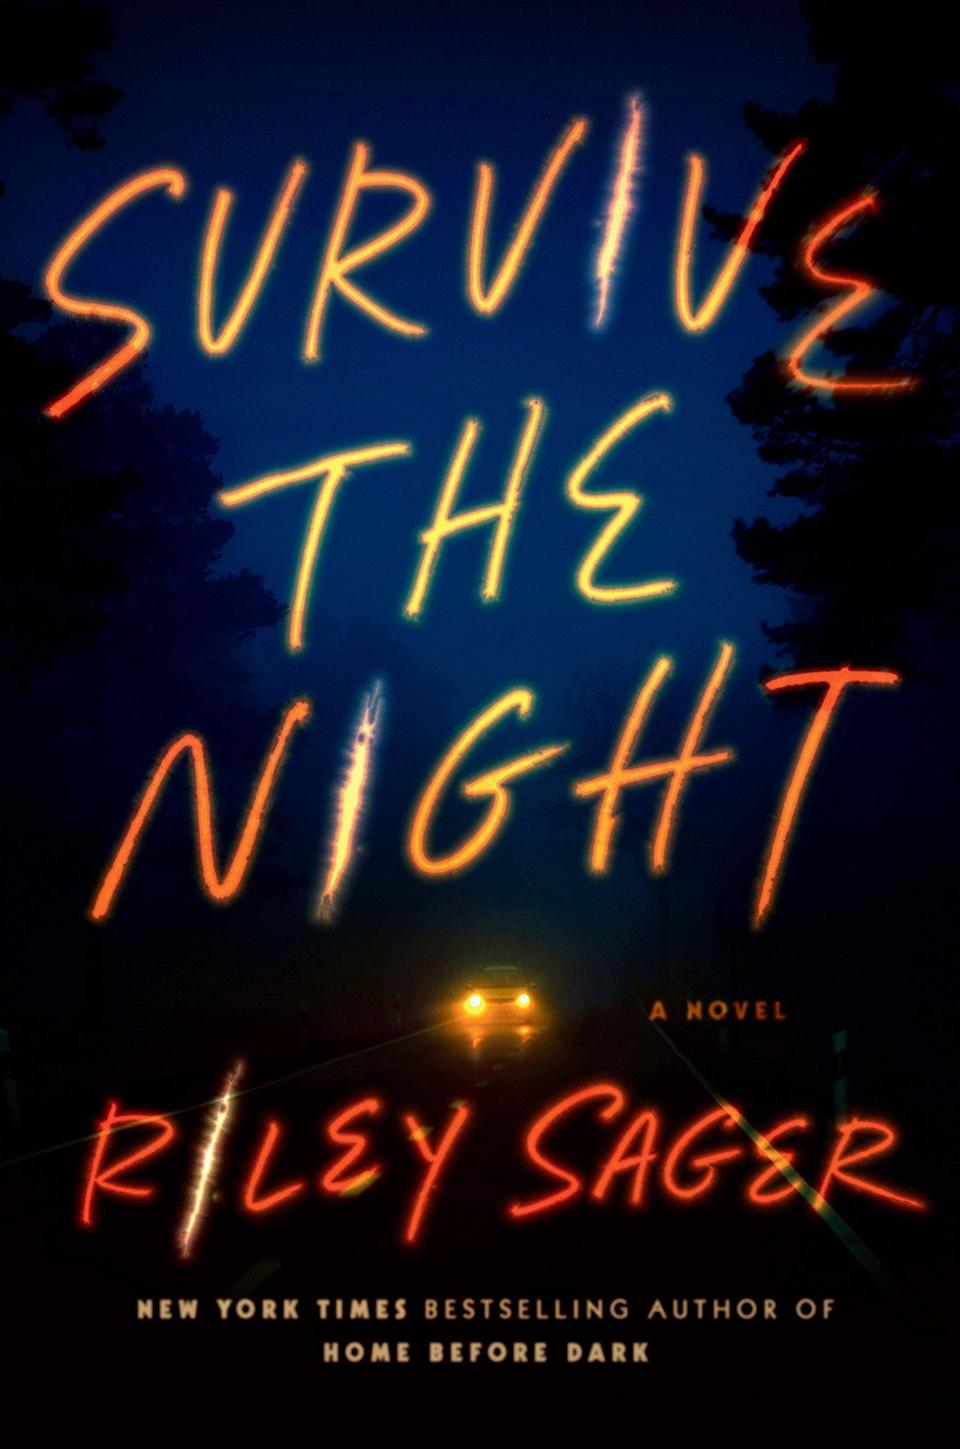 <p>Riley Sager's new thriller <span><strong>Survive the Night</strong></span> is a claustrophobic story about a woman who might be trapped in a car with a serial killer. Set in 1991, horror movie fan Charlie Jordan agrees to ride home from college with a guy she barely knows. But as their trip gets underway, she begins to wonder if the man sitting next to her is the campus killer who murdered her best friend. </p> <p><em>Out June 29</em></p>